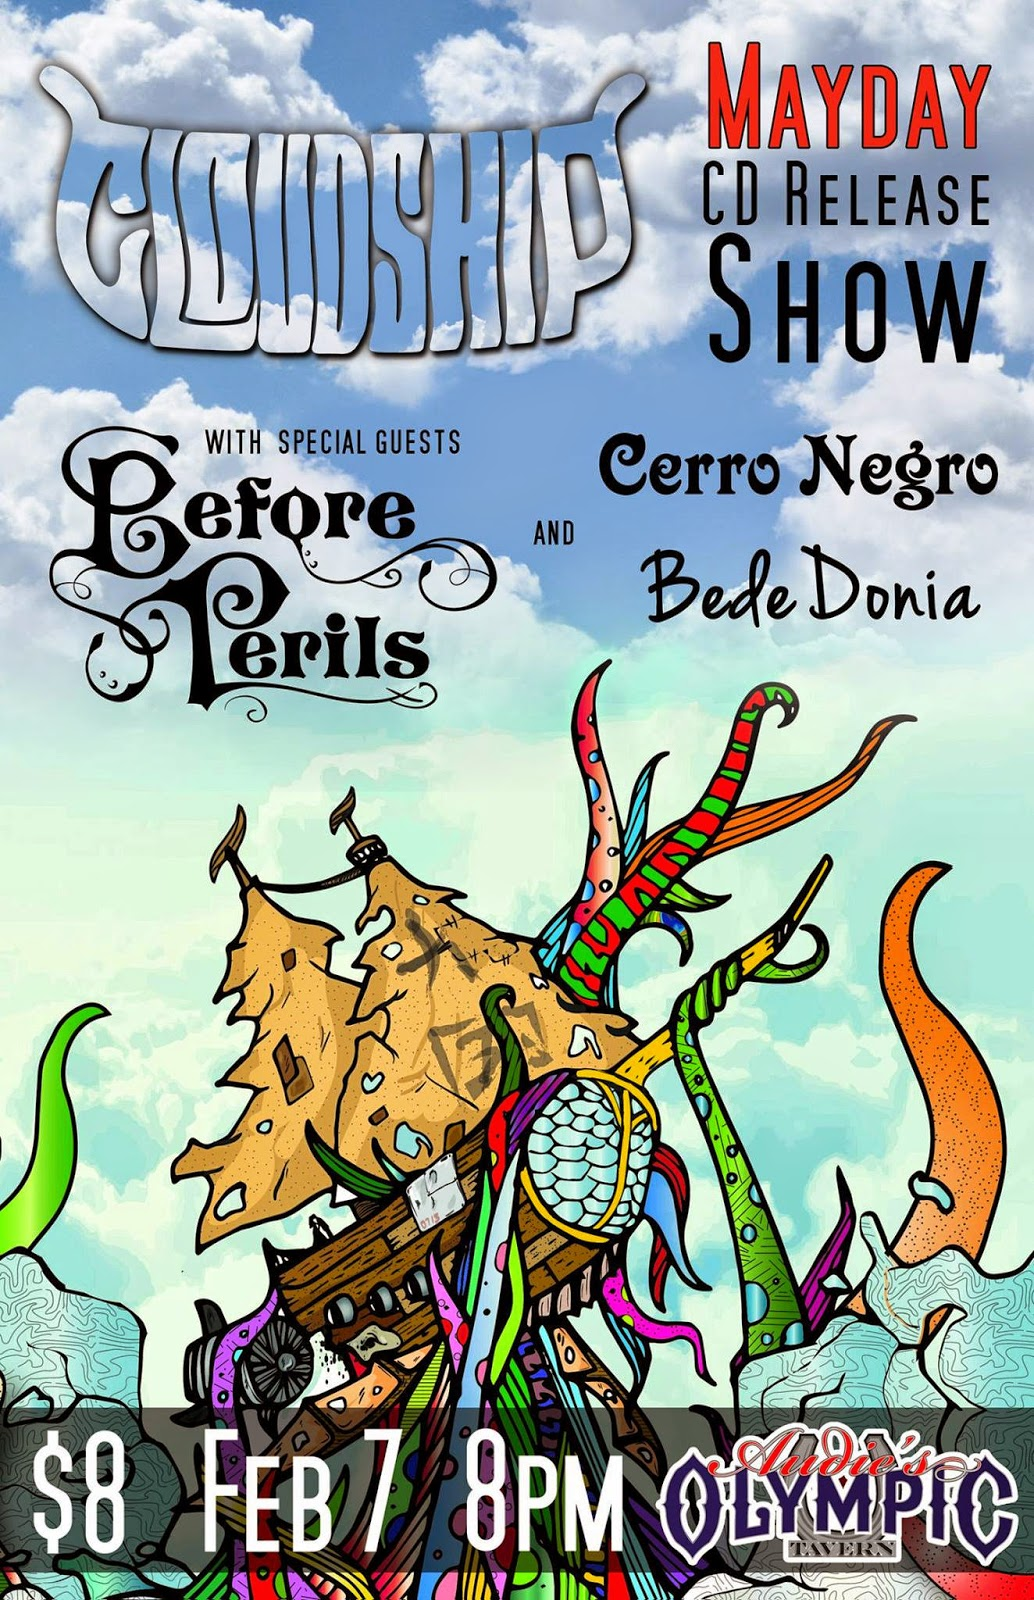 c5df07e1d636 And be sure to check out their album release show Saturday at Audie s  Olympic! Special guests include Cerro Negro